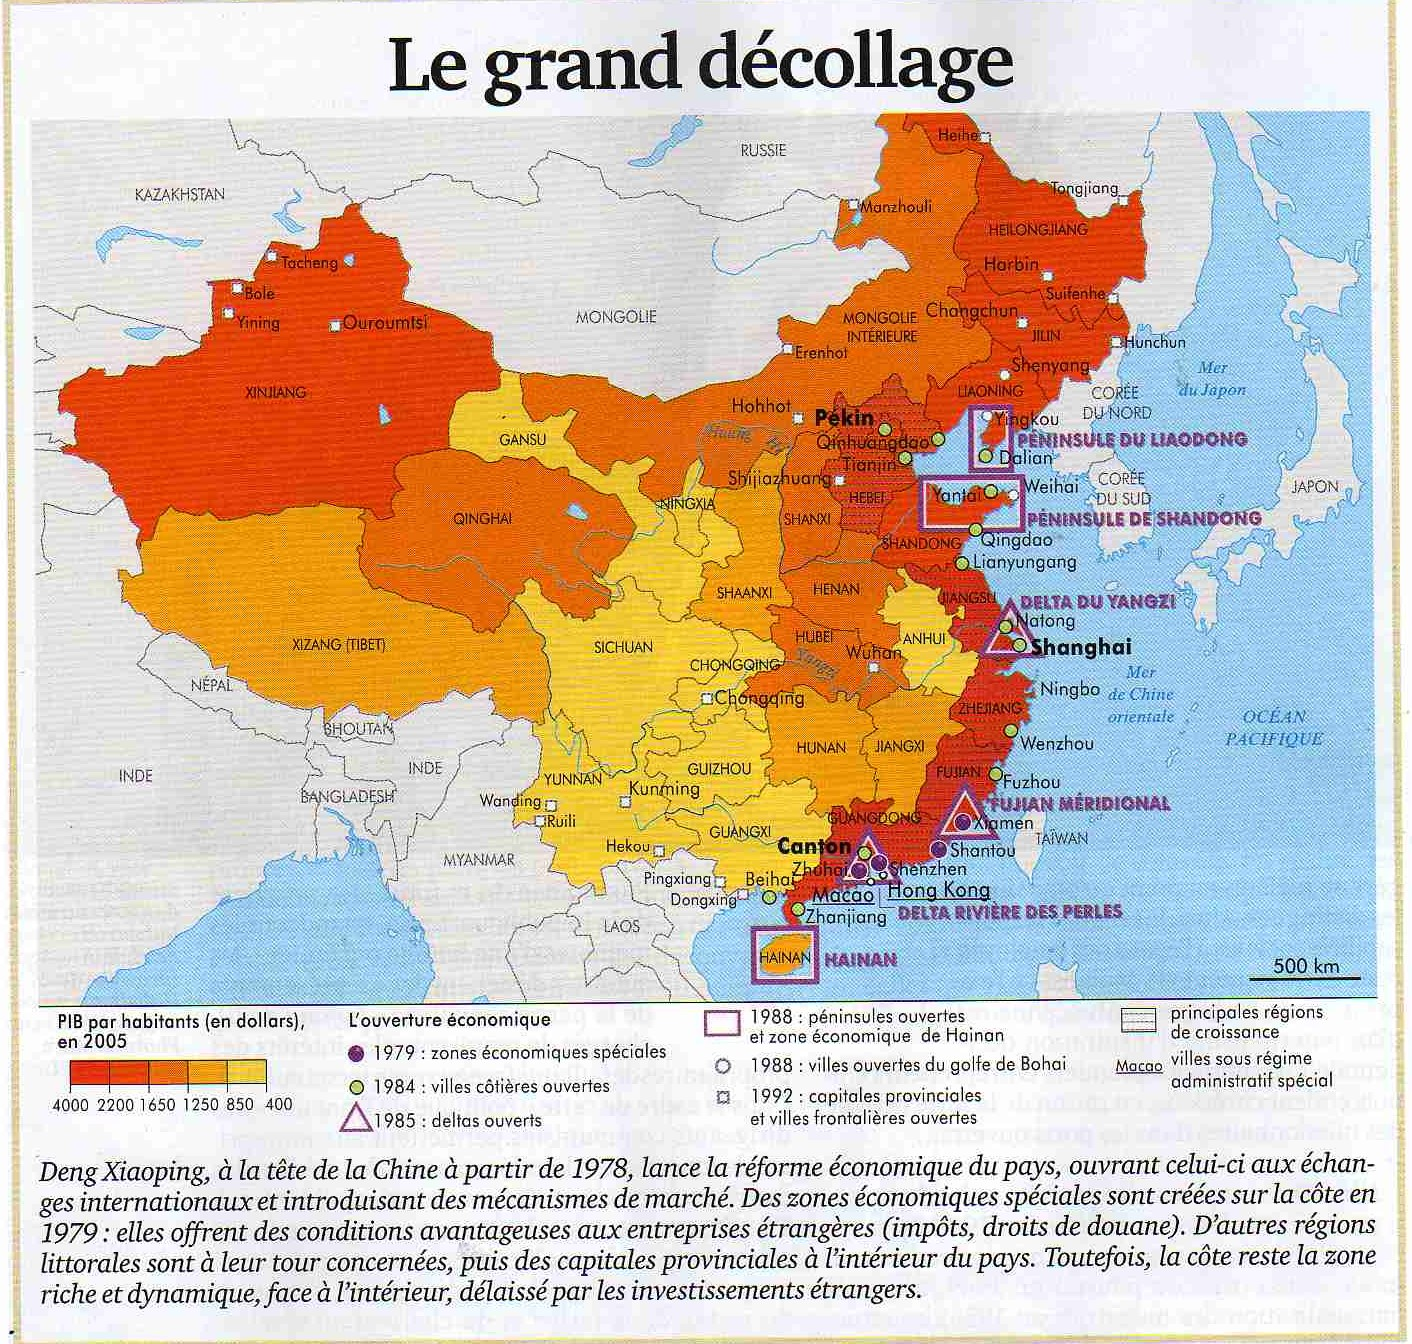 croquis-decollage-eco-de-la-chine.JPG